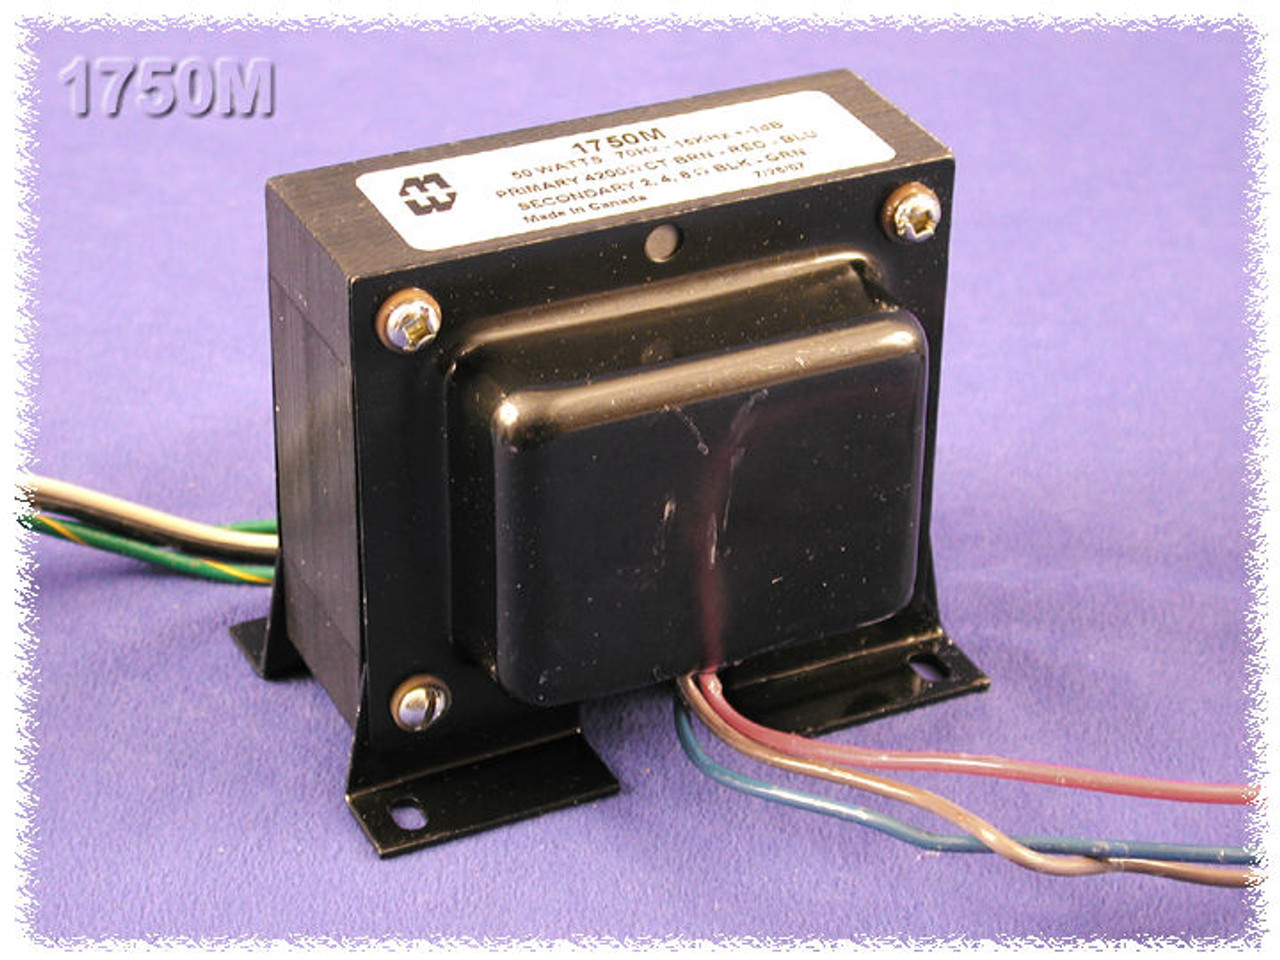 Hammond 1750M - Output Transformer